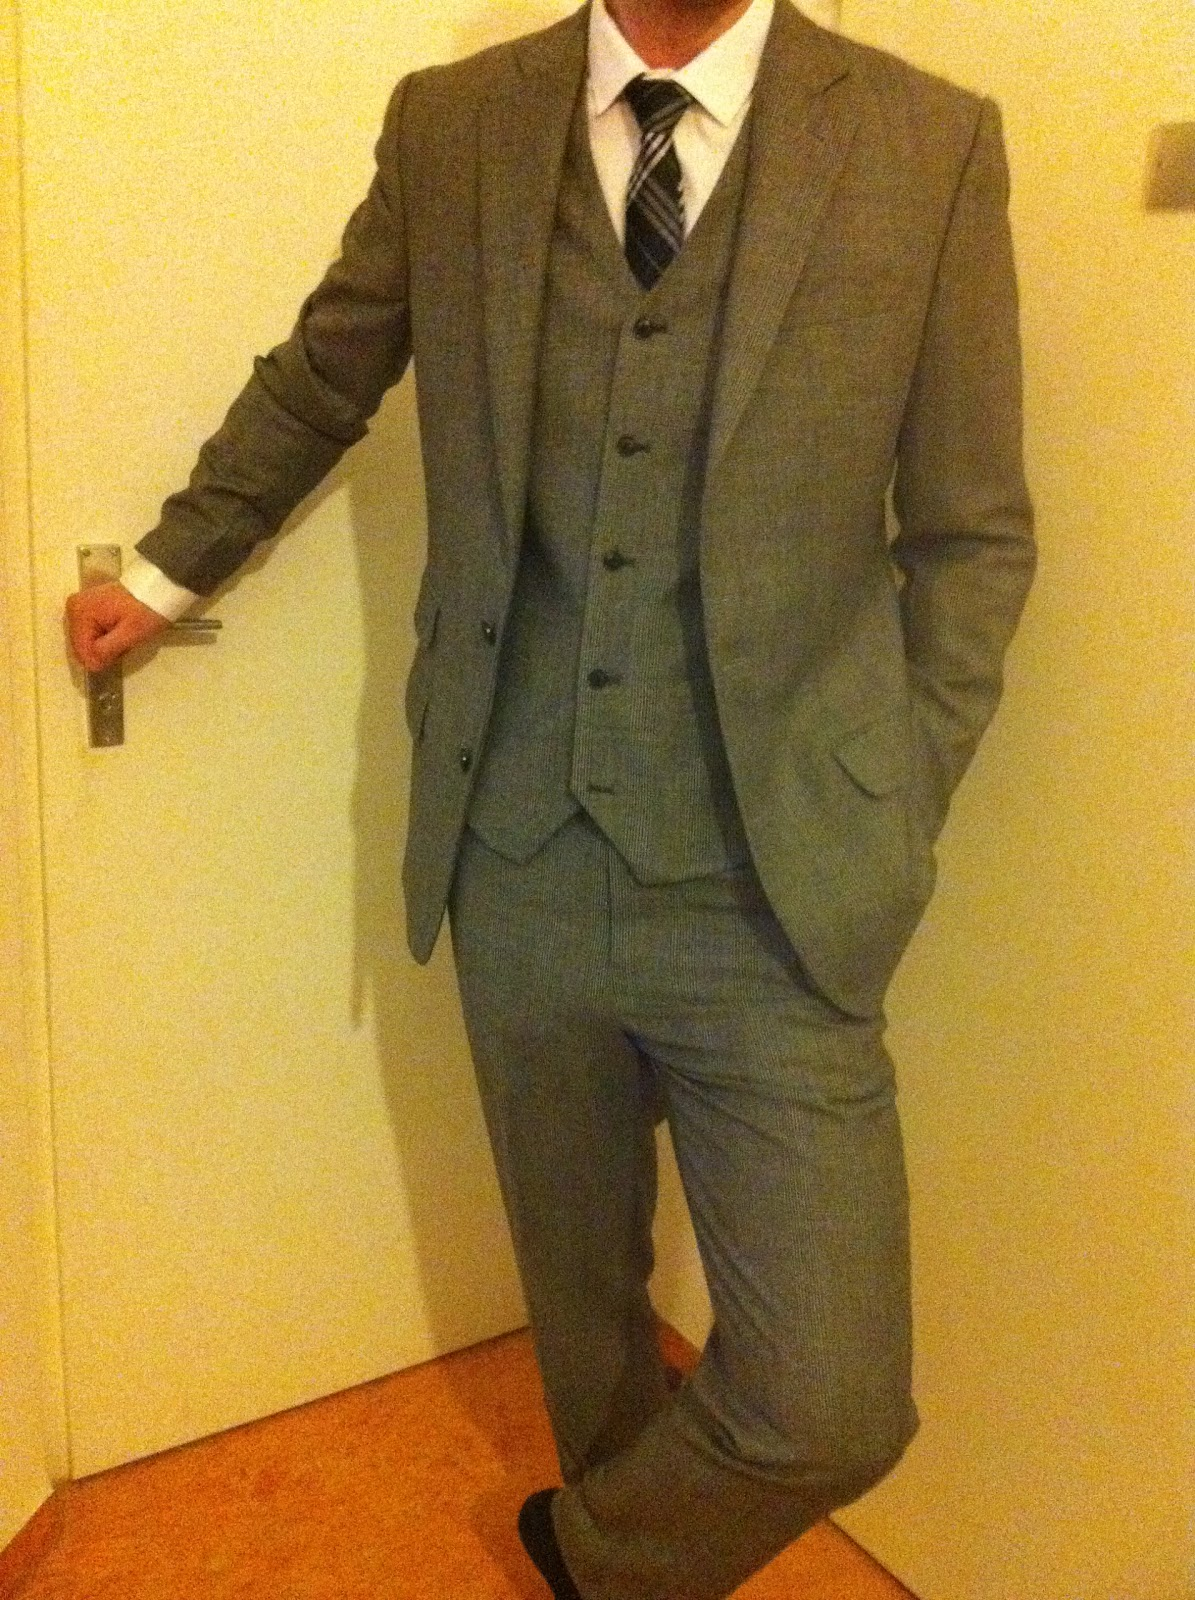 Indochino Review: The Associate 3-piece Tweed Suit